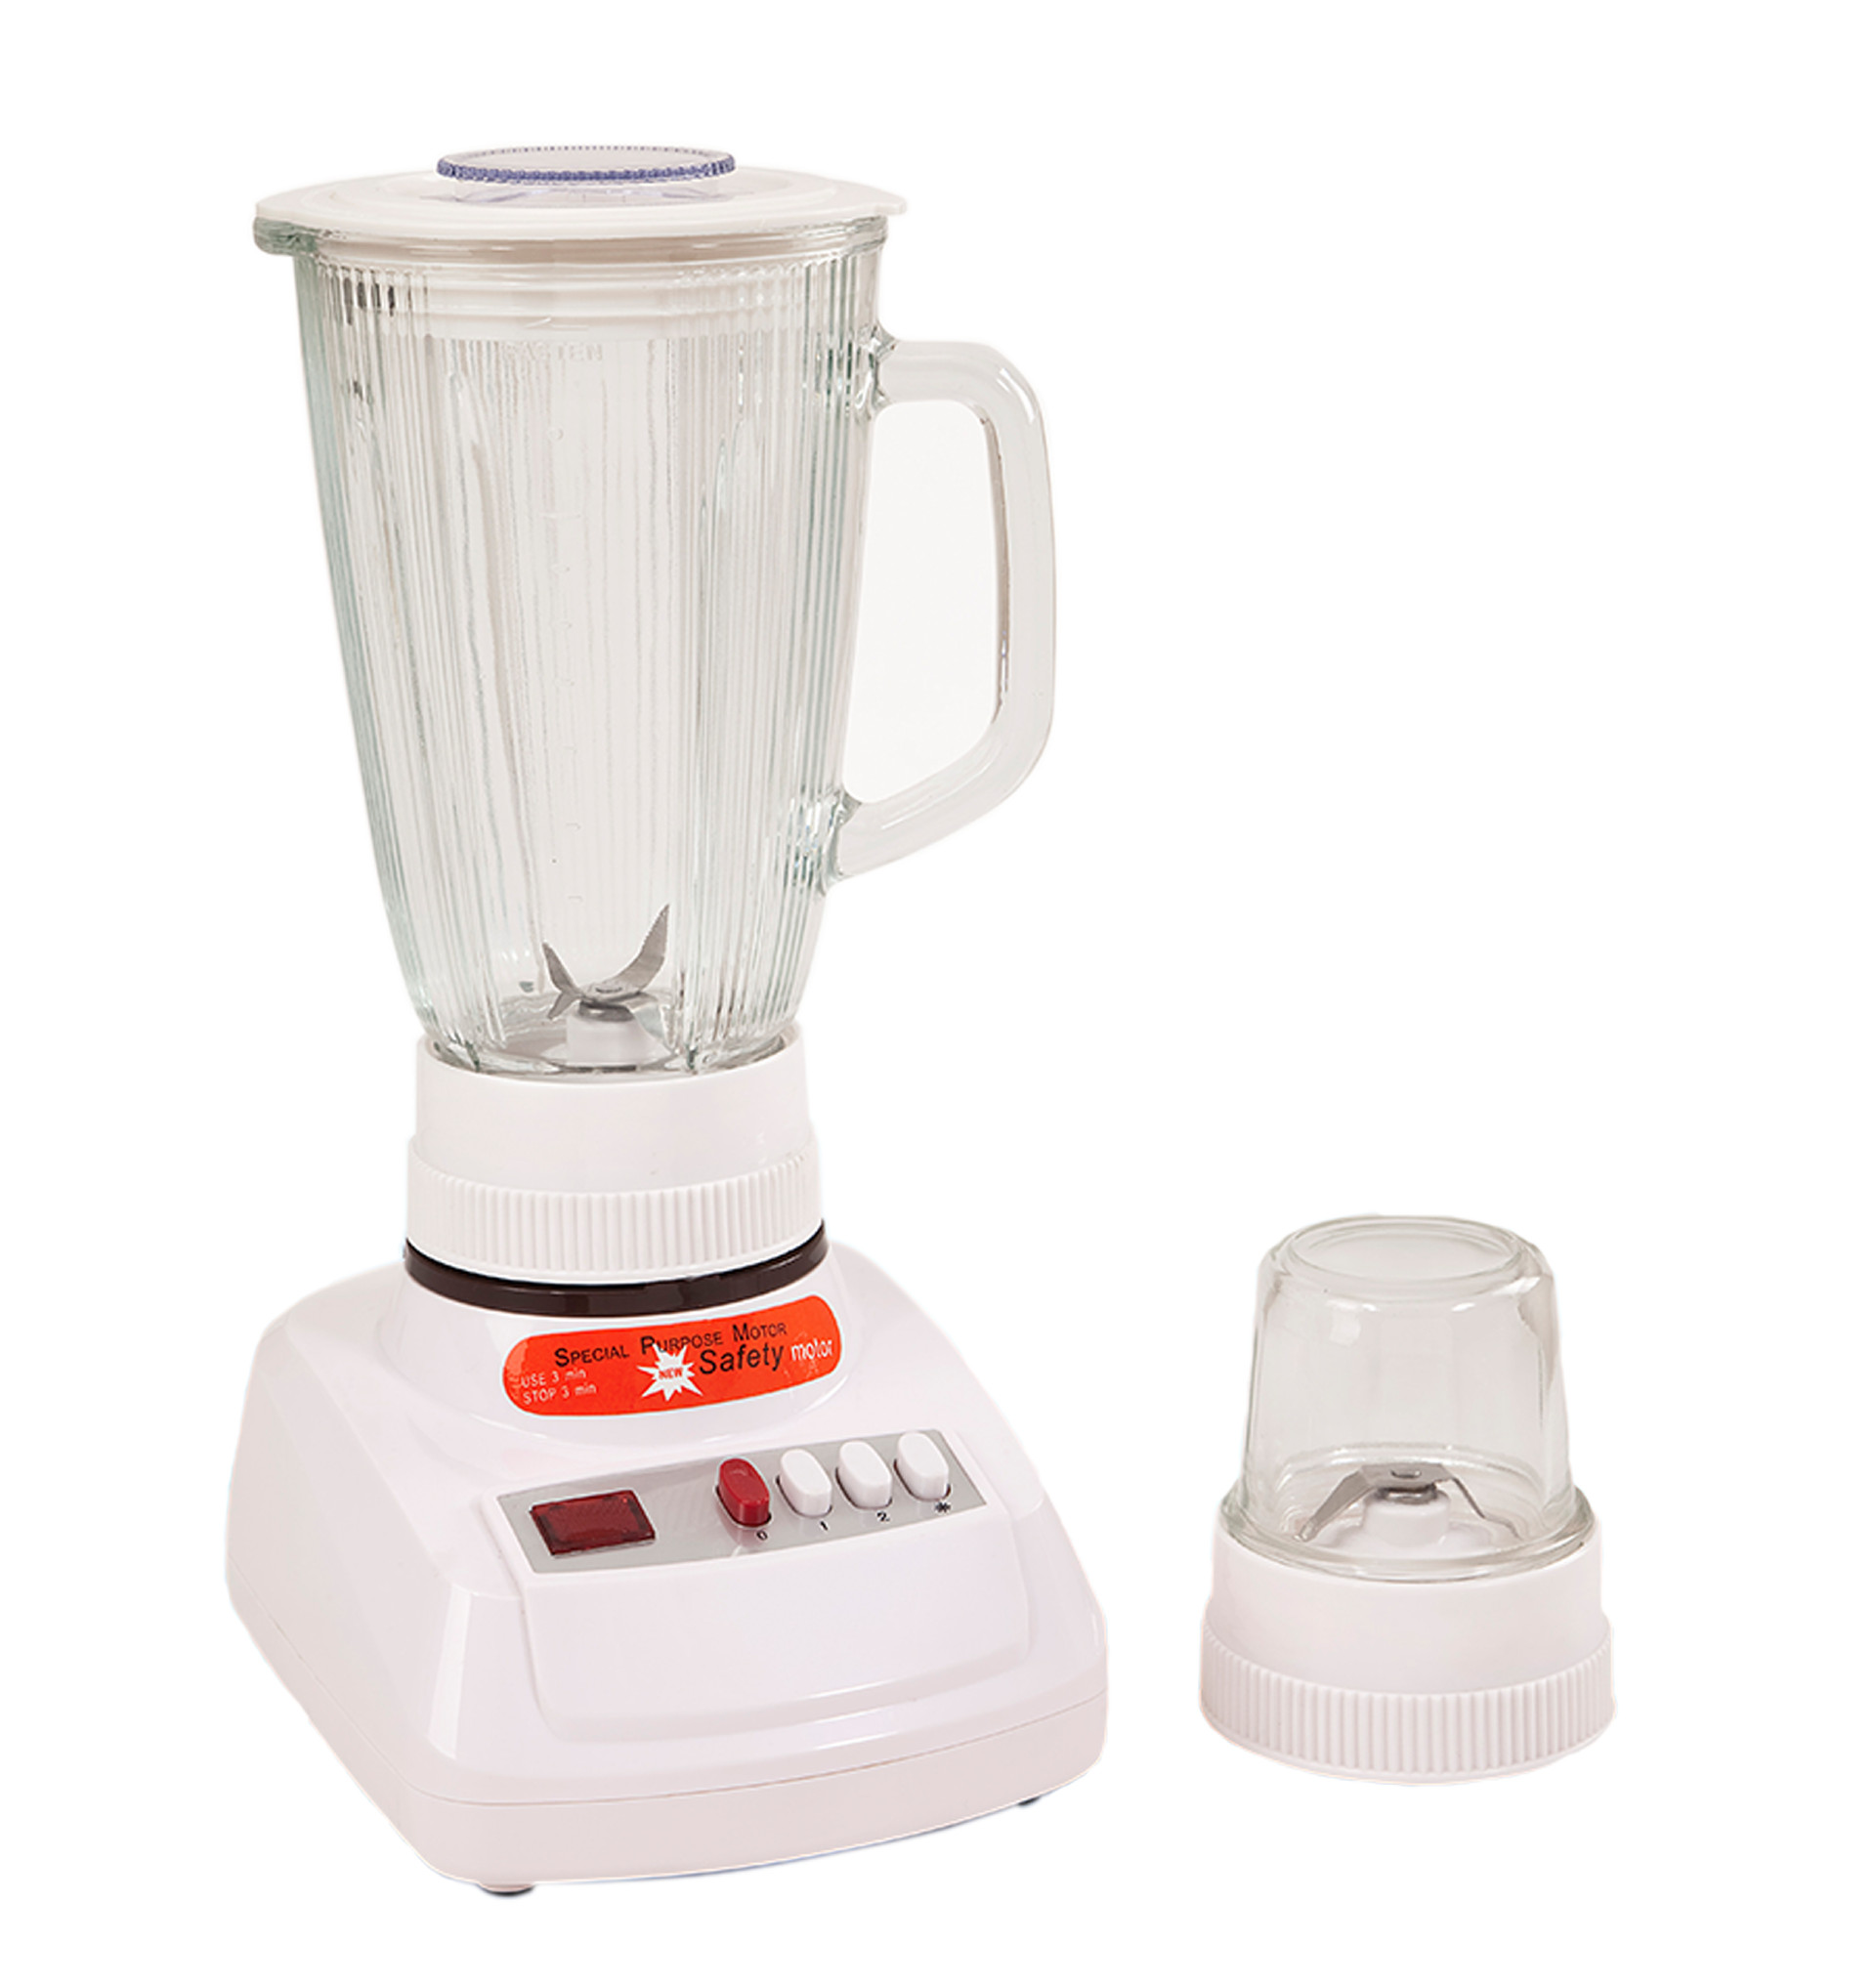 1400ml Glass Jar Vegetable Chopper Electric Blender Manufact